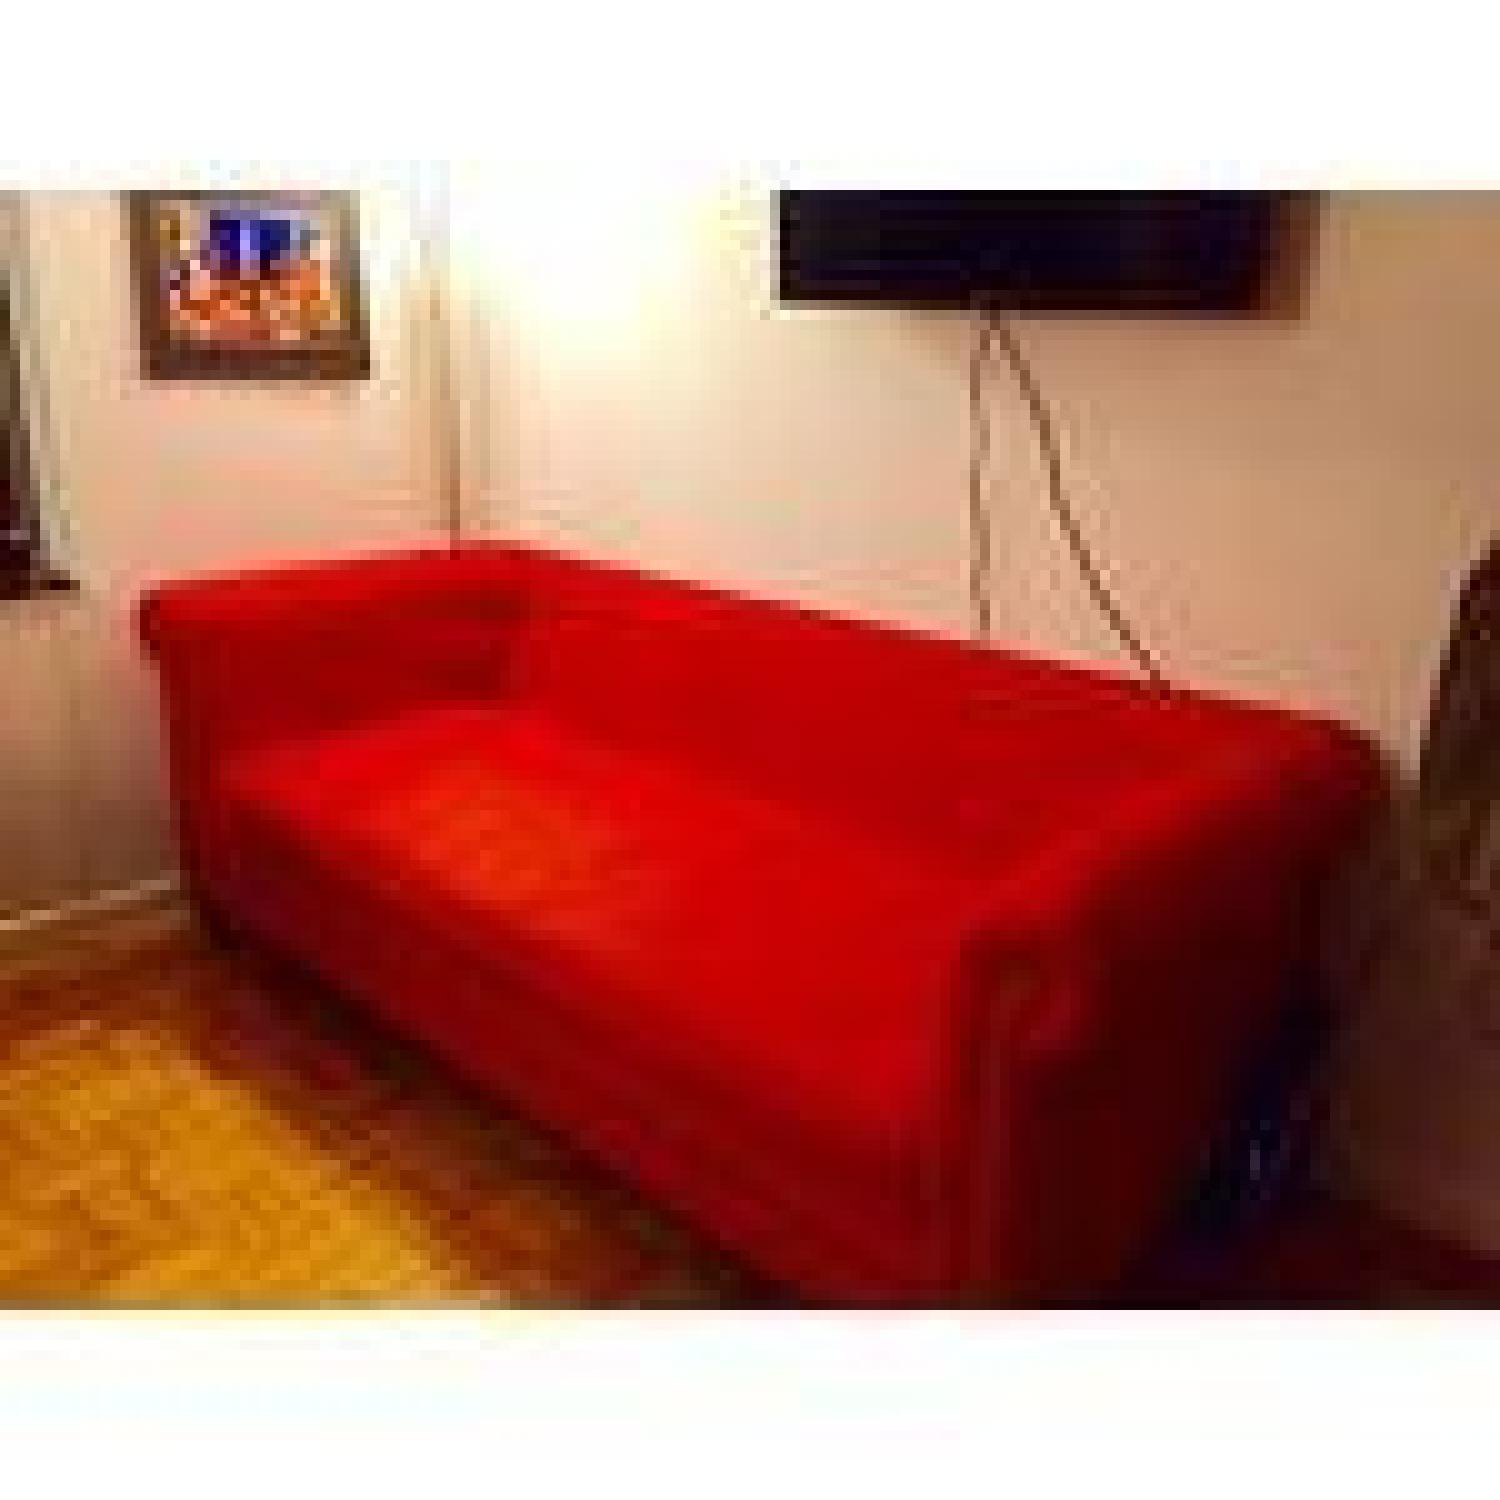 Crate & Barrel Red Couch - image-6